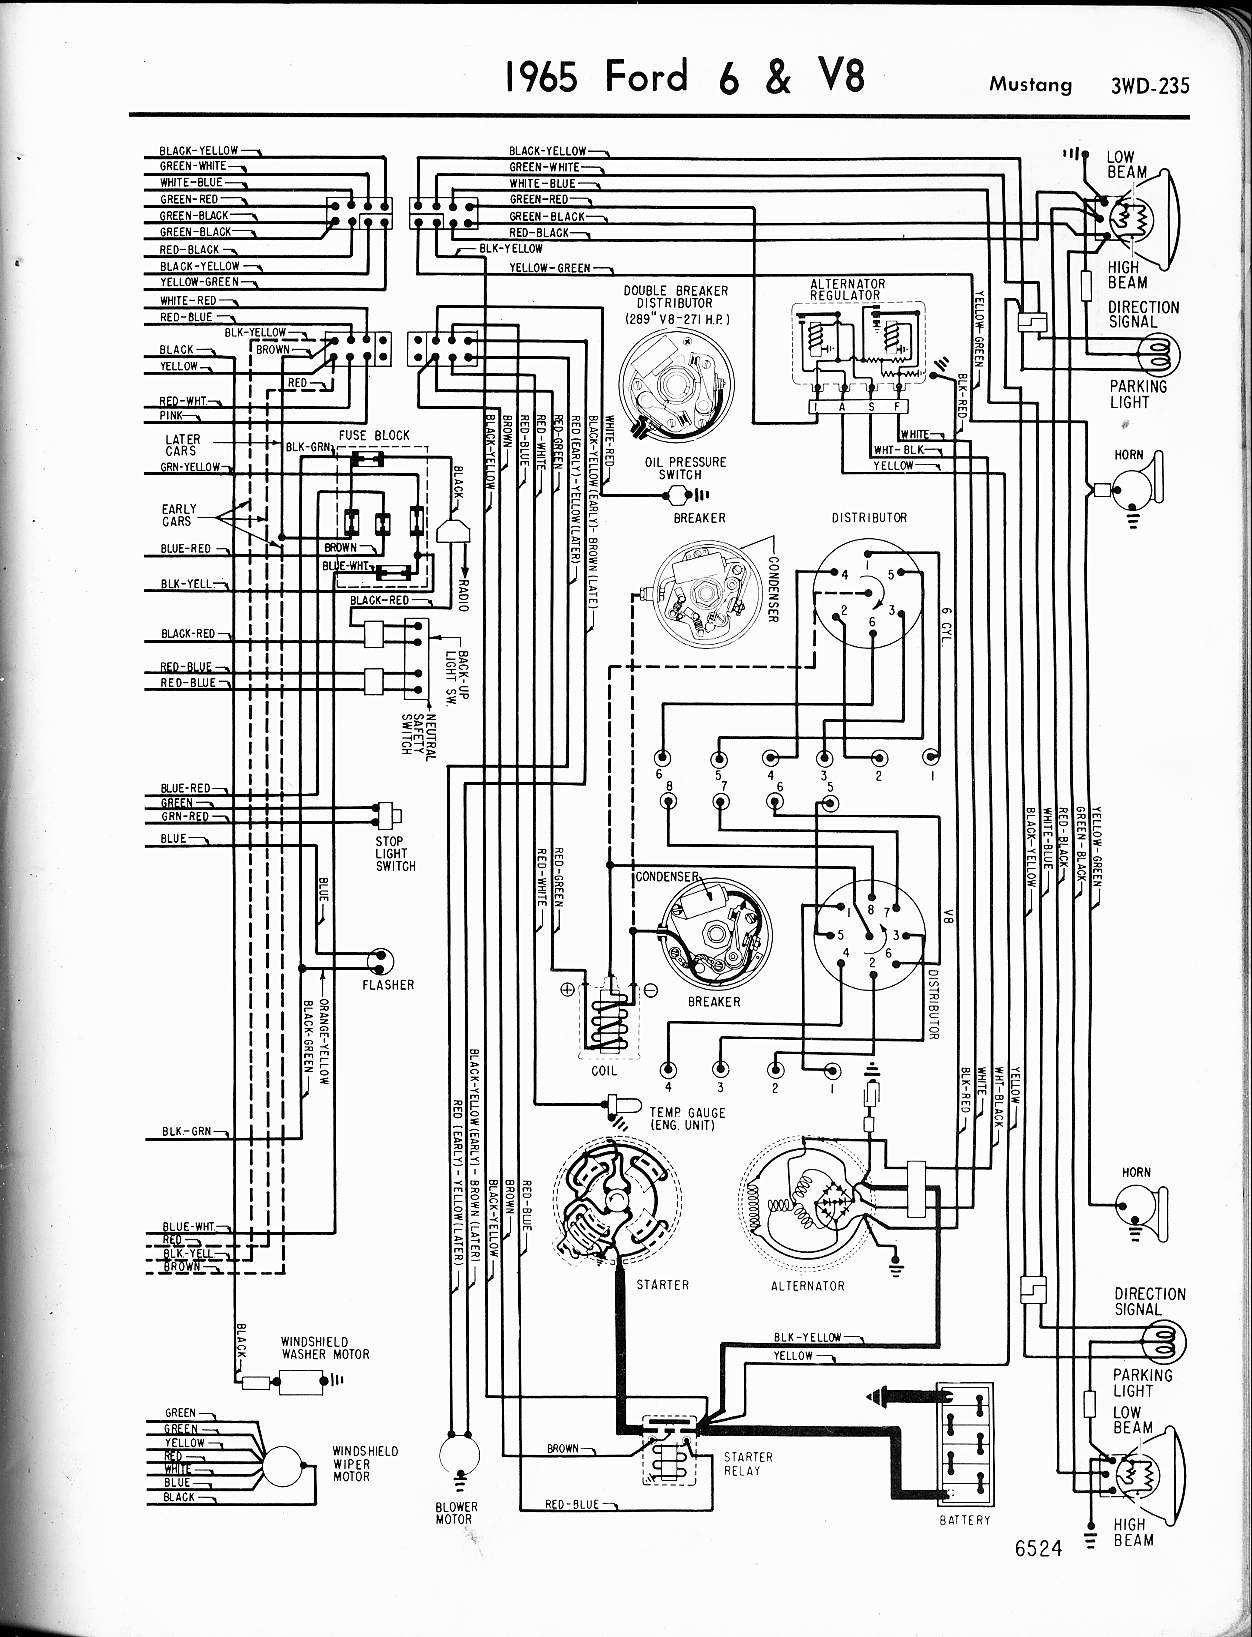 1965_mustang_wiring_2 ford diagrams 1965 Mustang Restoration Guide at gsmx.co